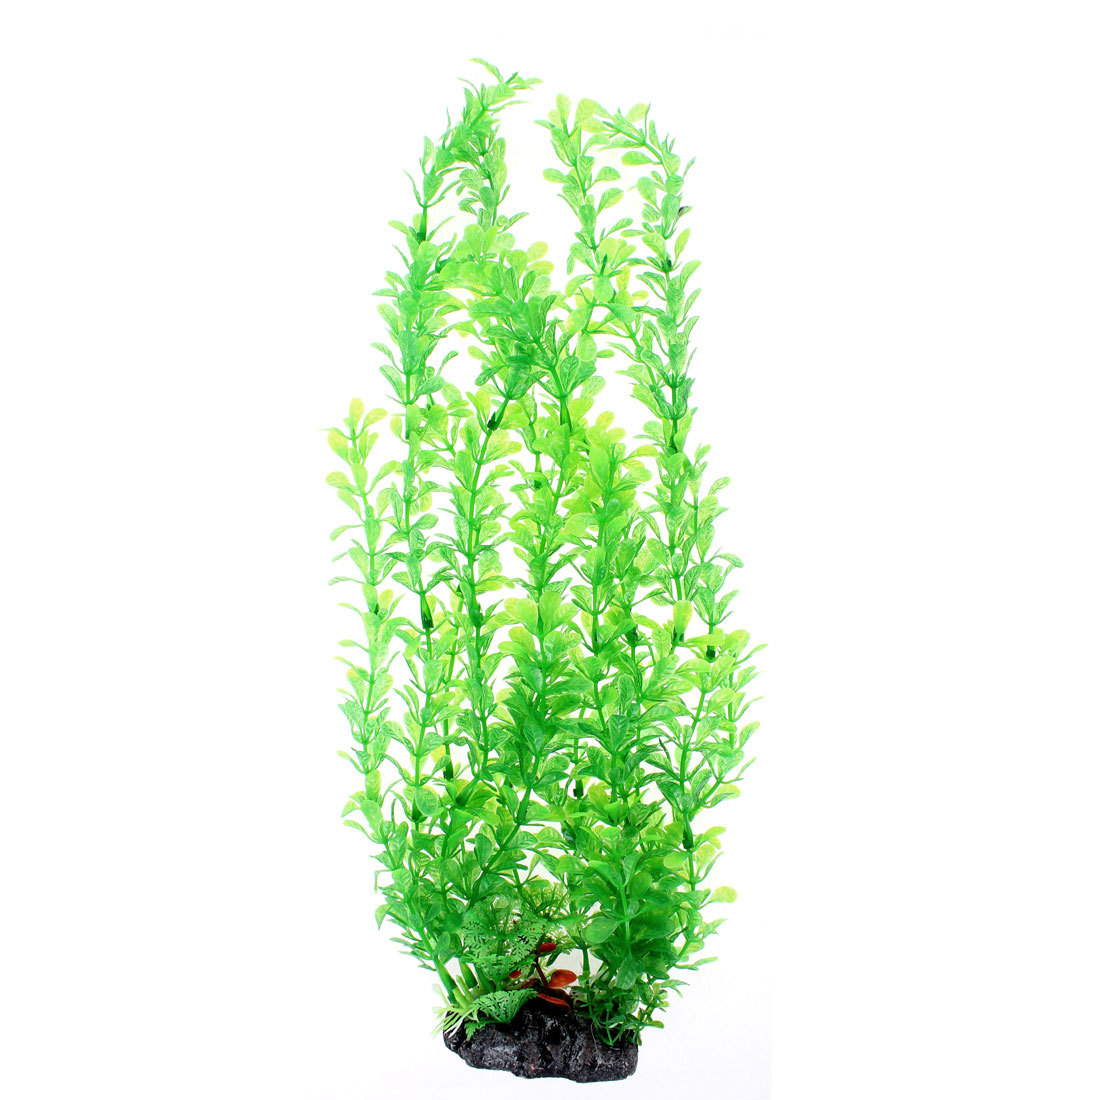 Aquarium Plant Landscaping Aquatic Plastic Grass Plant Decoration Green